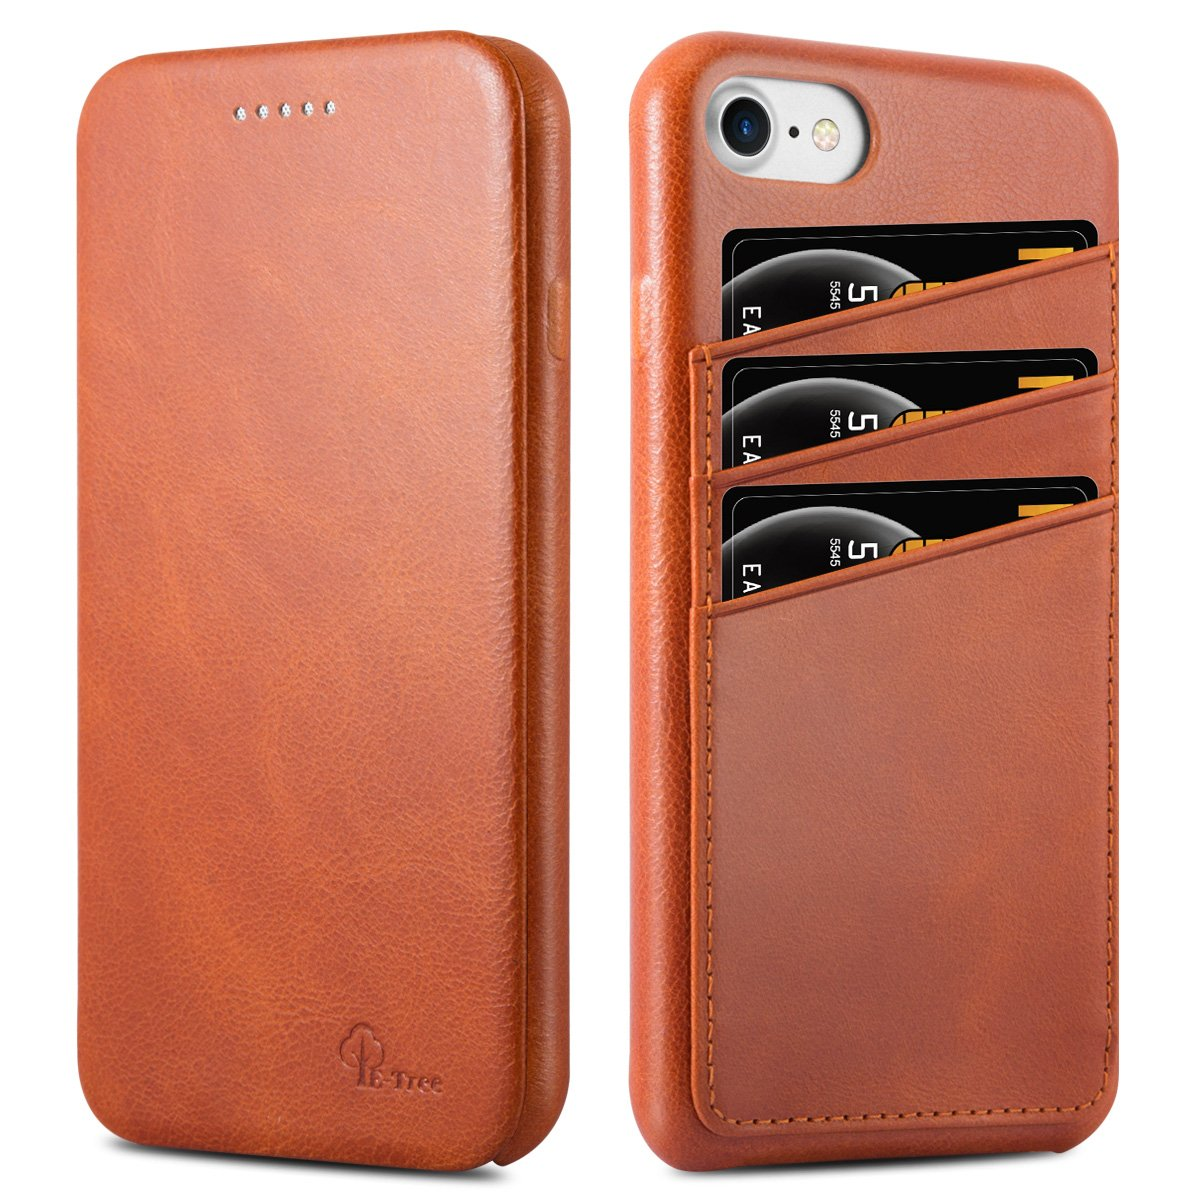 iPhone 7 Case, iPhone 8 Case, E-Tree Genuine Leather Case Ultra Slim Flip Folio Cover w/ Business Card Holders Slots Anti-scratch 360°Full Body Protection 4.7'' for Apple iPhone 7 & iPhone 8 - Brown